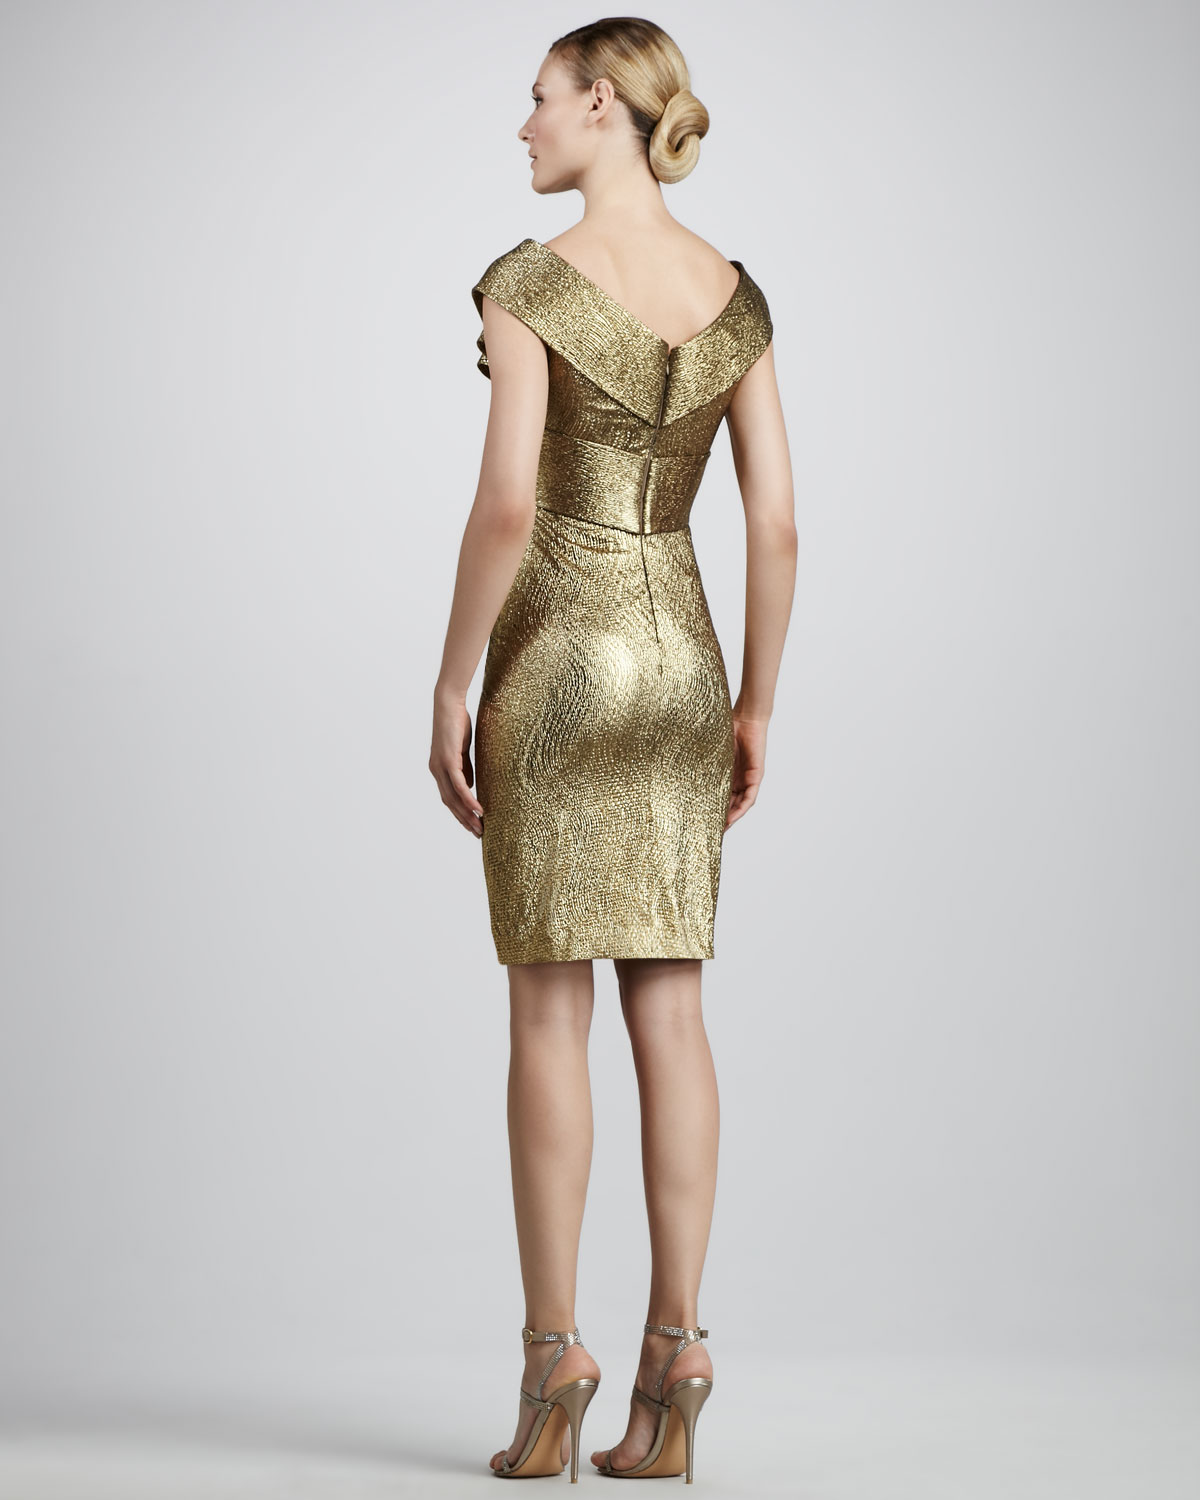 Lyst - Notte By Marchesa Bow Front Metallic Cocktail Dress in Metallic